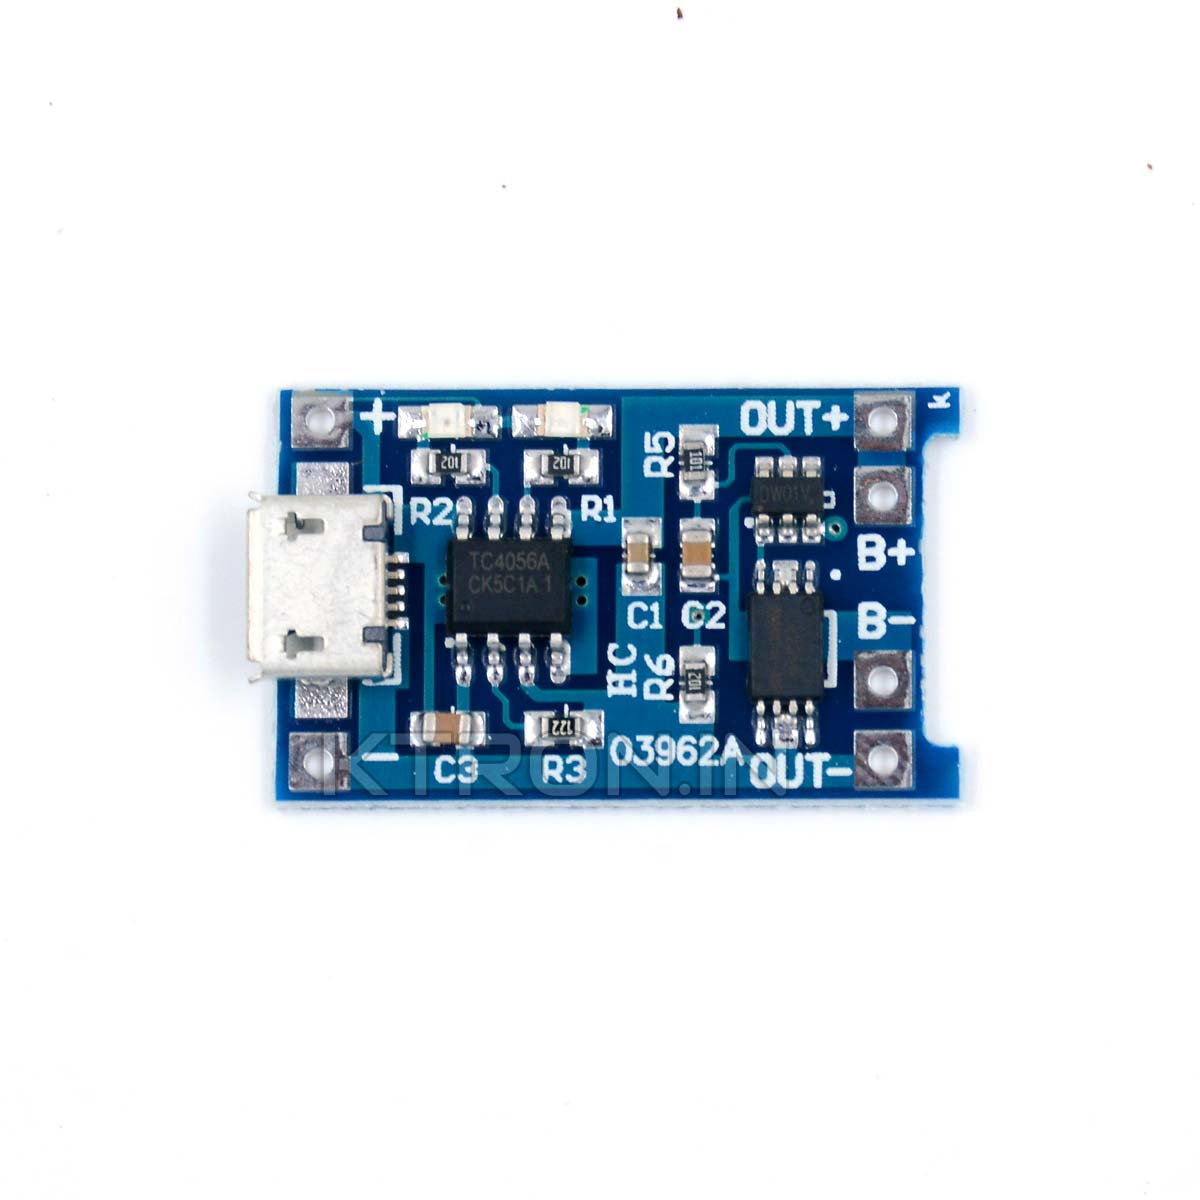 TP4056 Lithium Ion Battery Charging Module with Protection